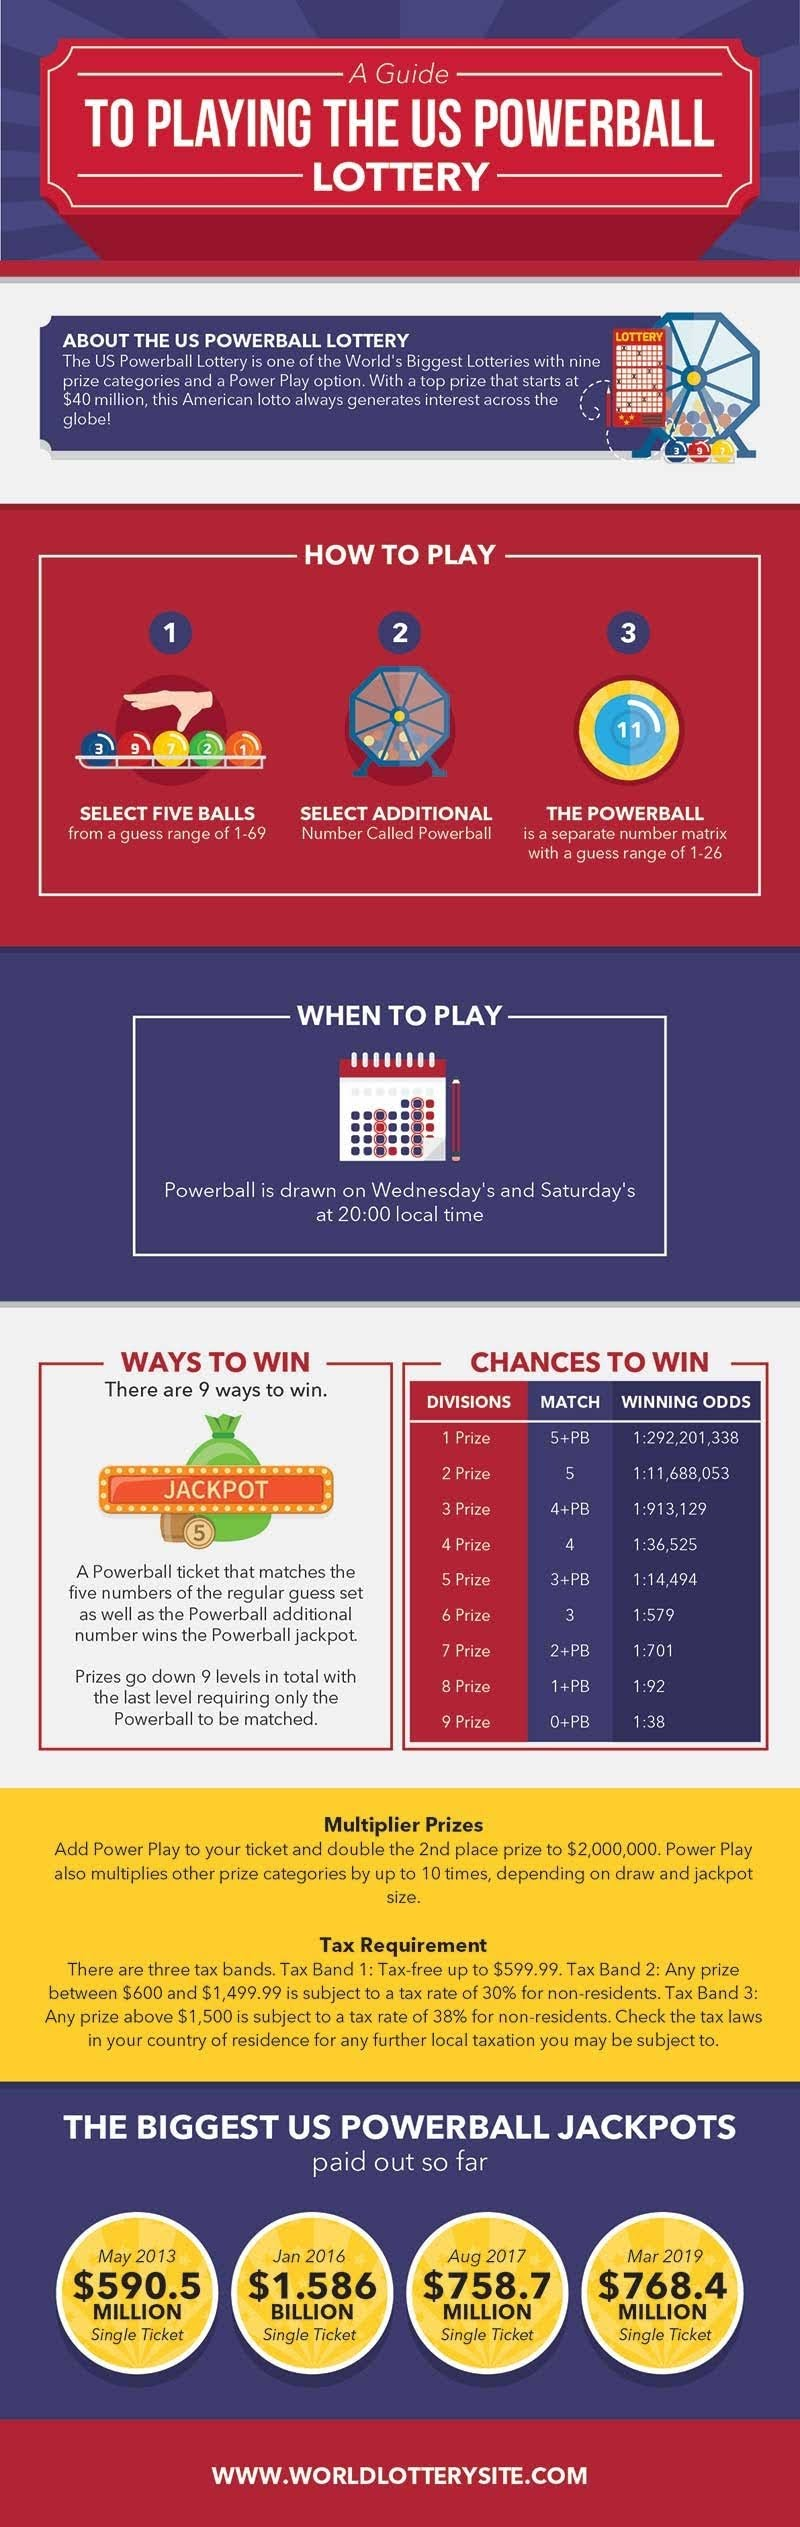 A Guide to Playing the US Powerball Lottery #infographic